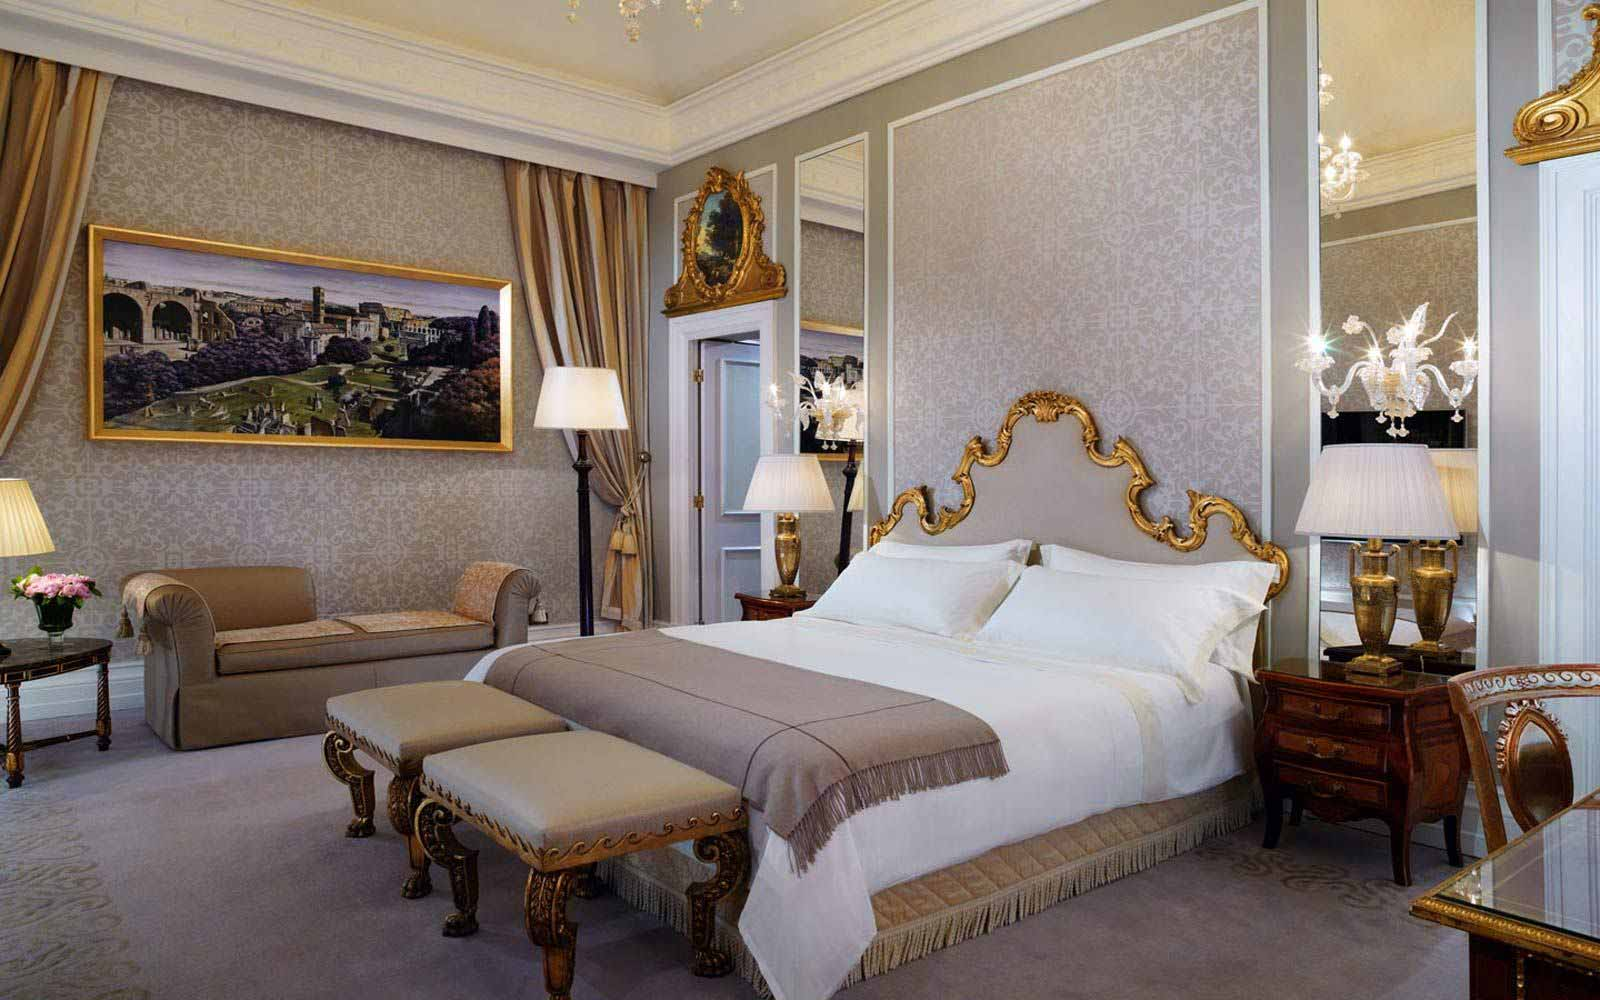 Royal suite bedroom at St.Regis Grand Hotel